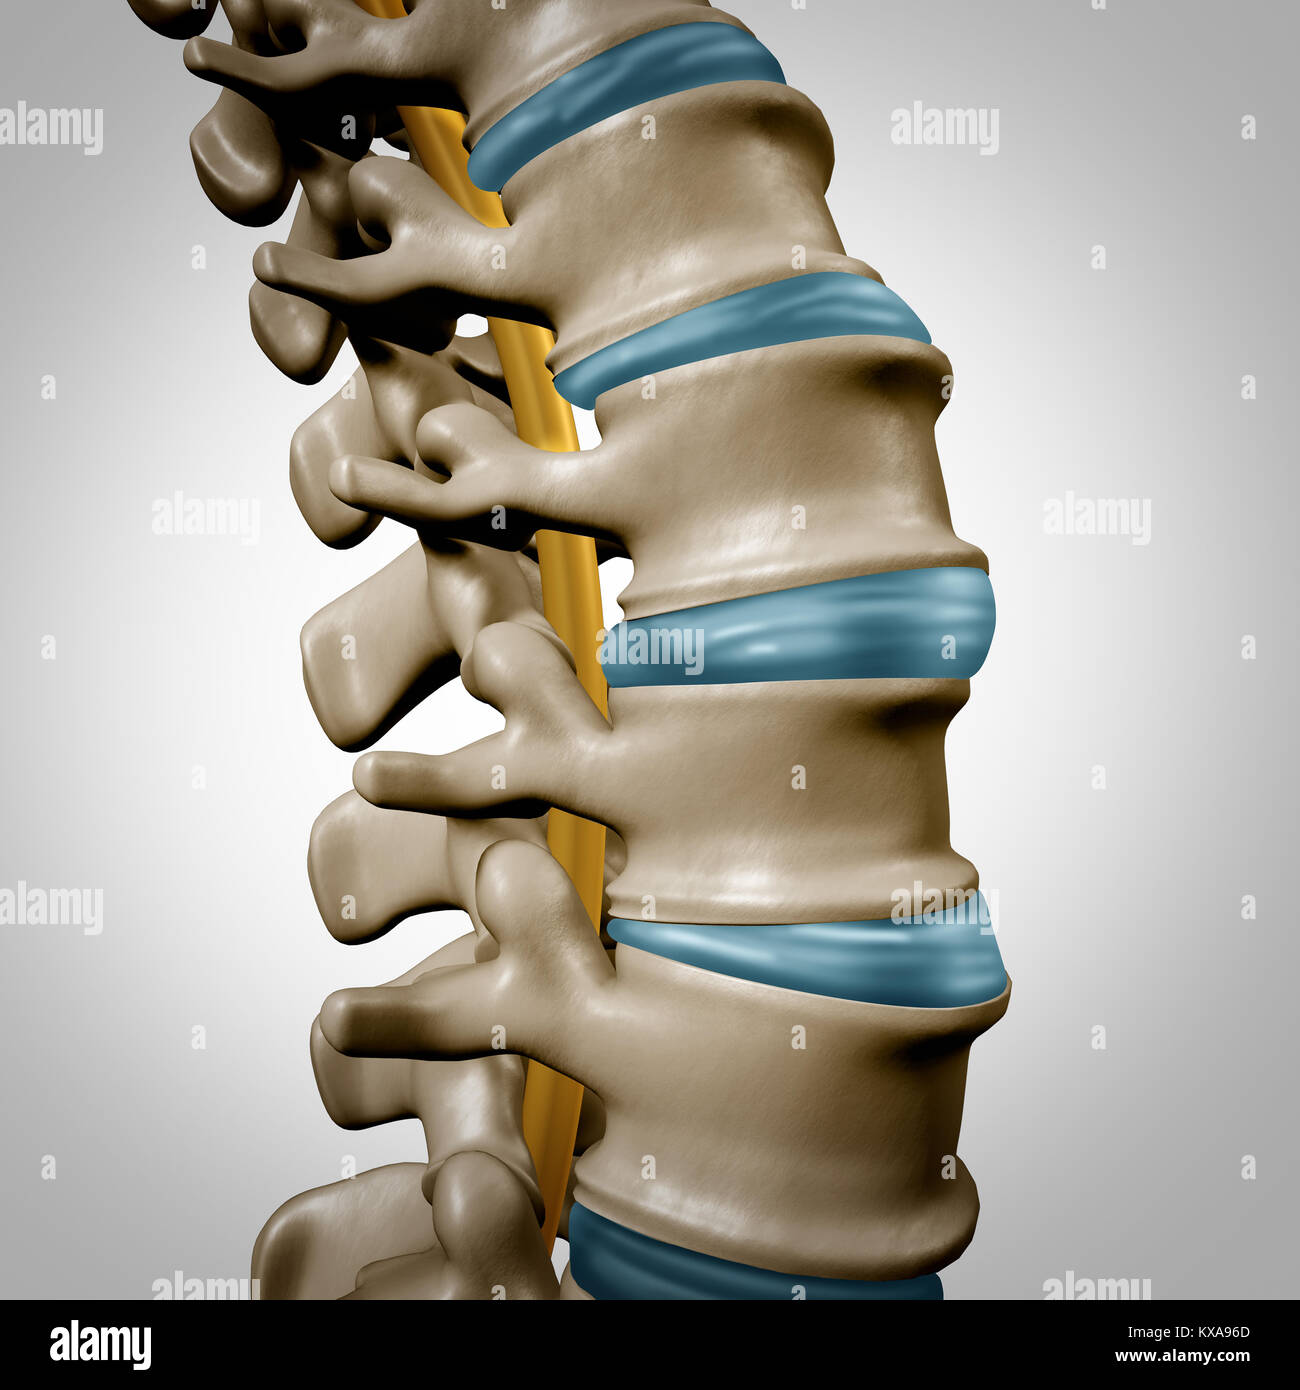 Human Spine Anatomy Section And Spinal Concept As Medical Health